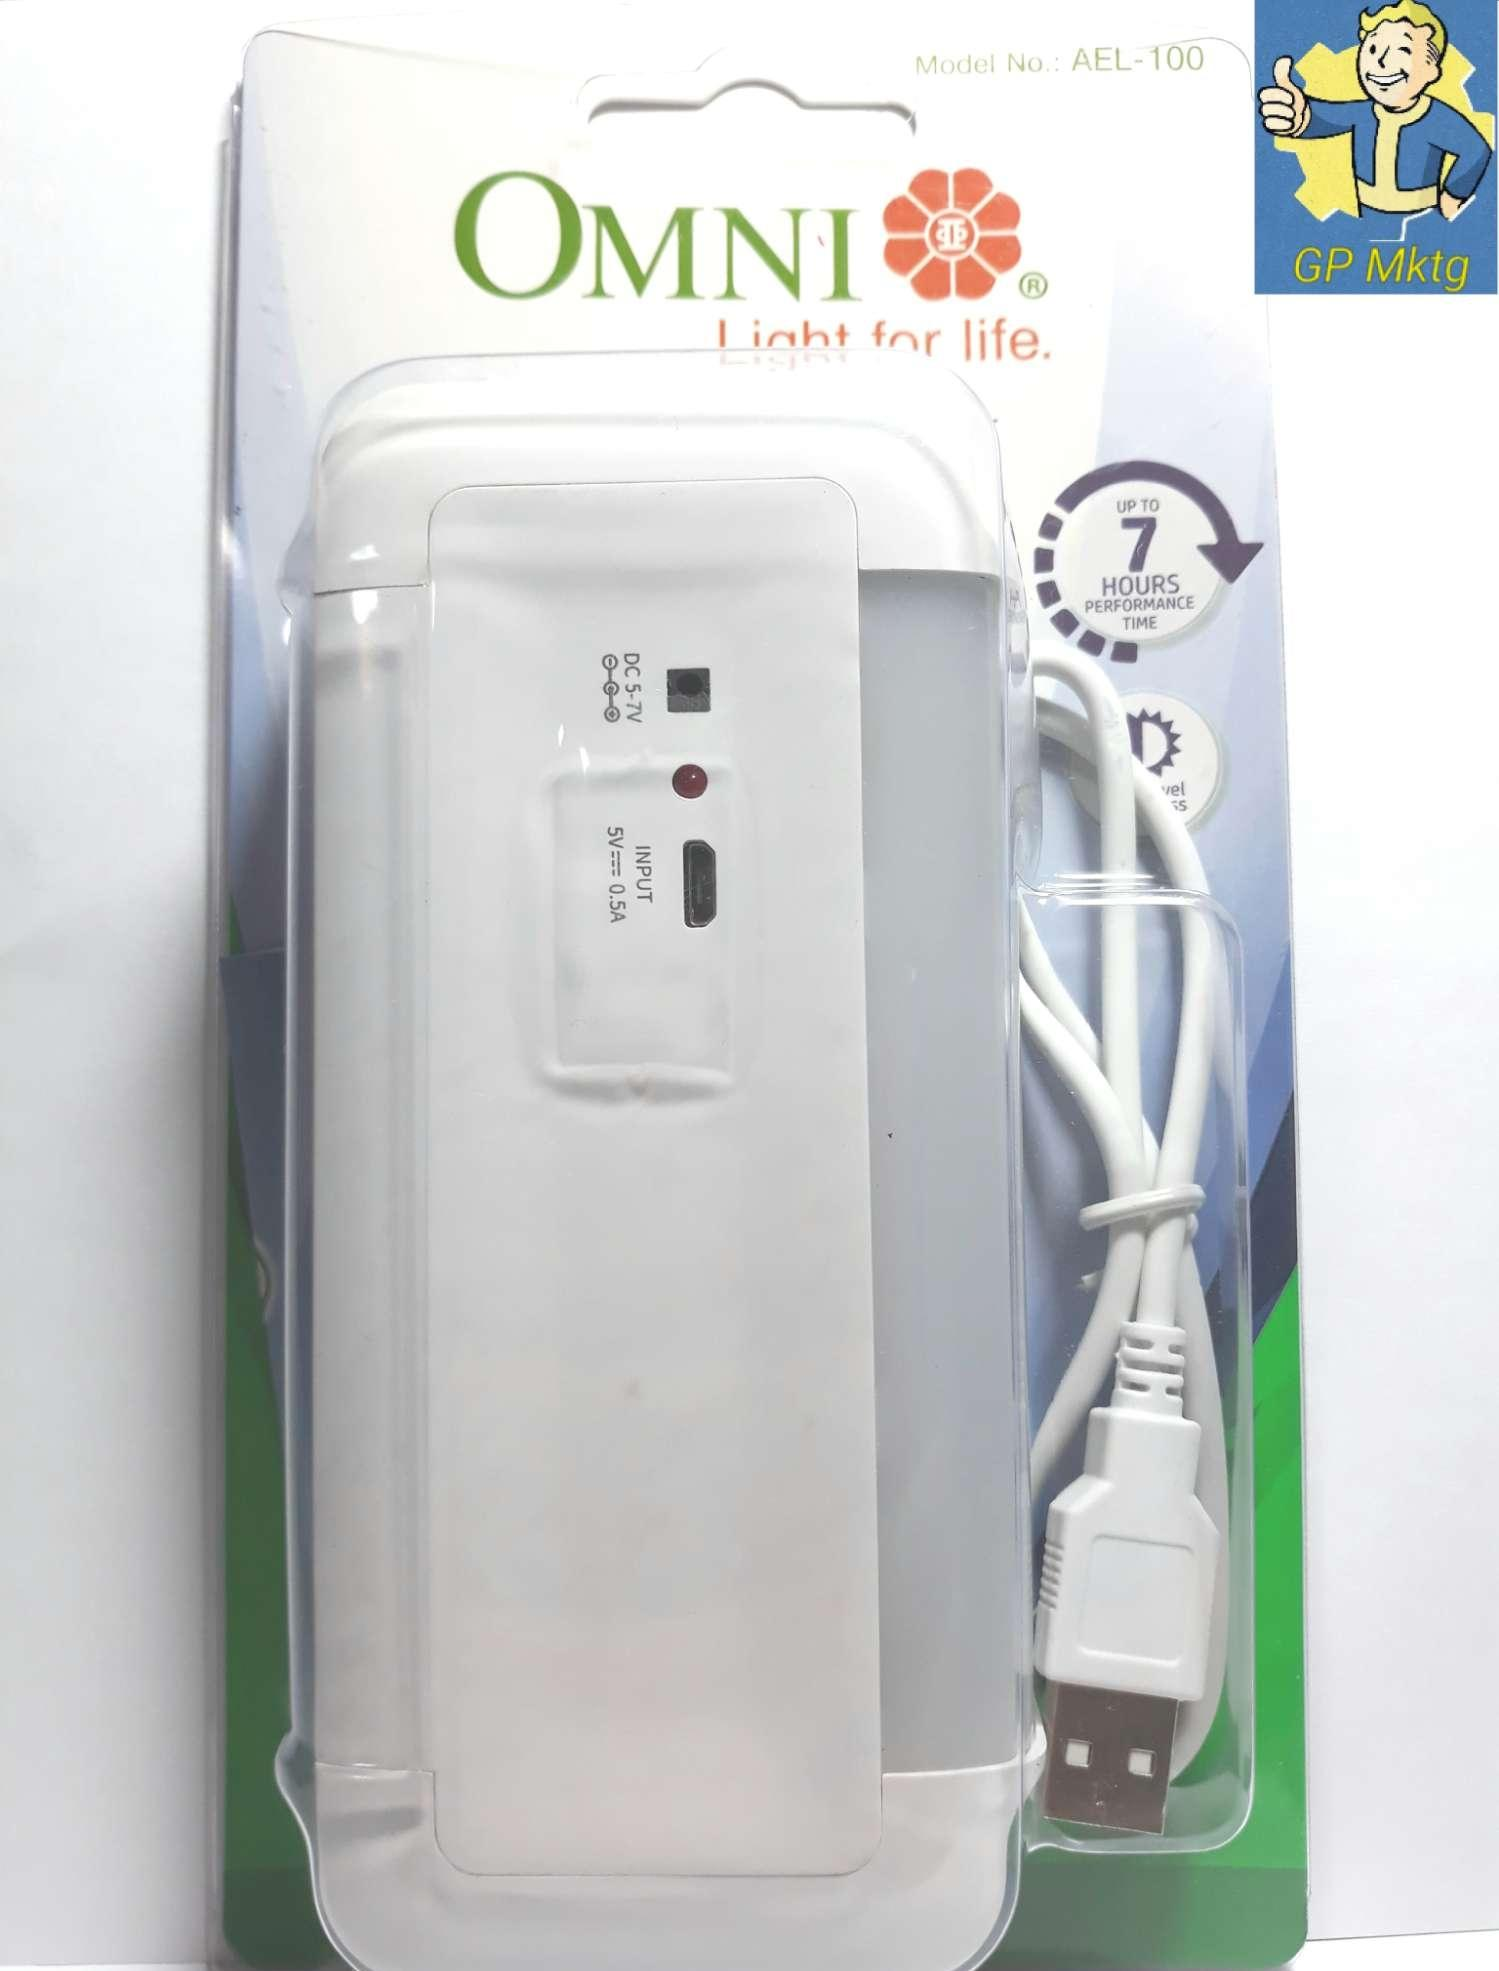 Omni Philippines Price List Light Fan Lamp Bulb Wires Wiring 5a Lighting Sockets Led 18watts Emergency Rechargeable Ael 100 Ael100